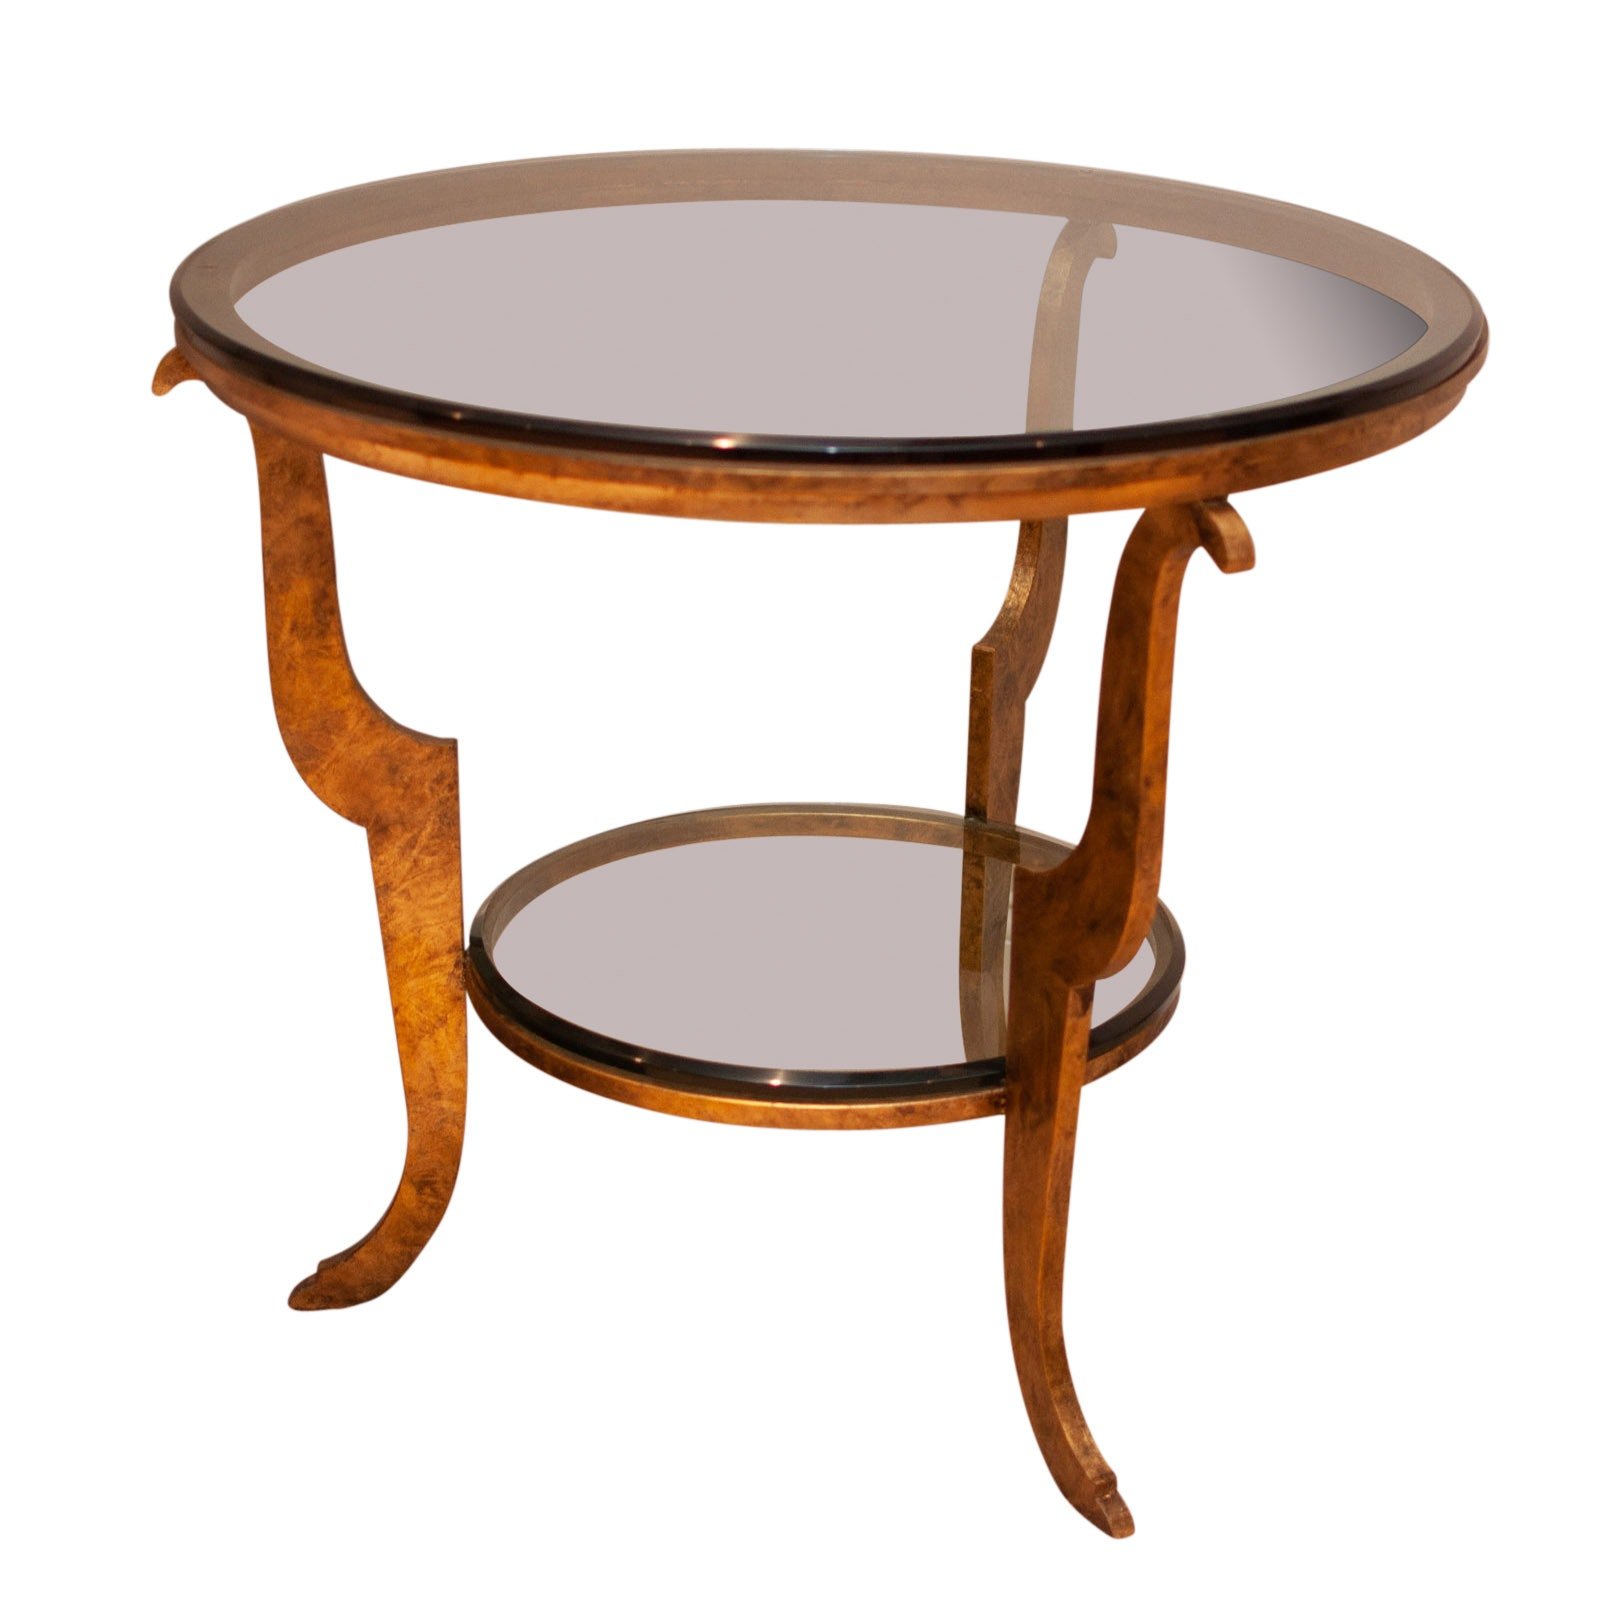 Contemporary Round Metal Side Table with Glass Top by Swaim Furniture